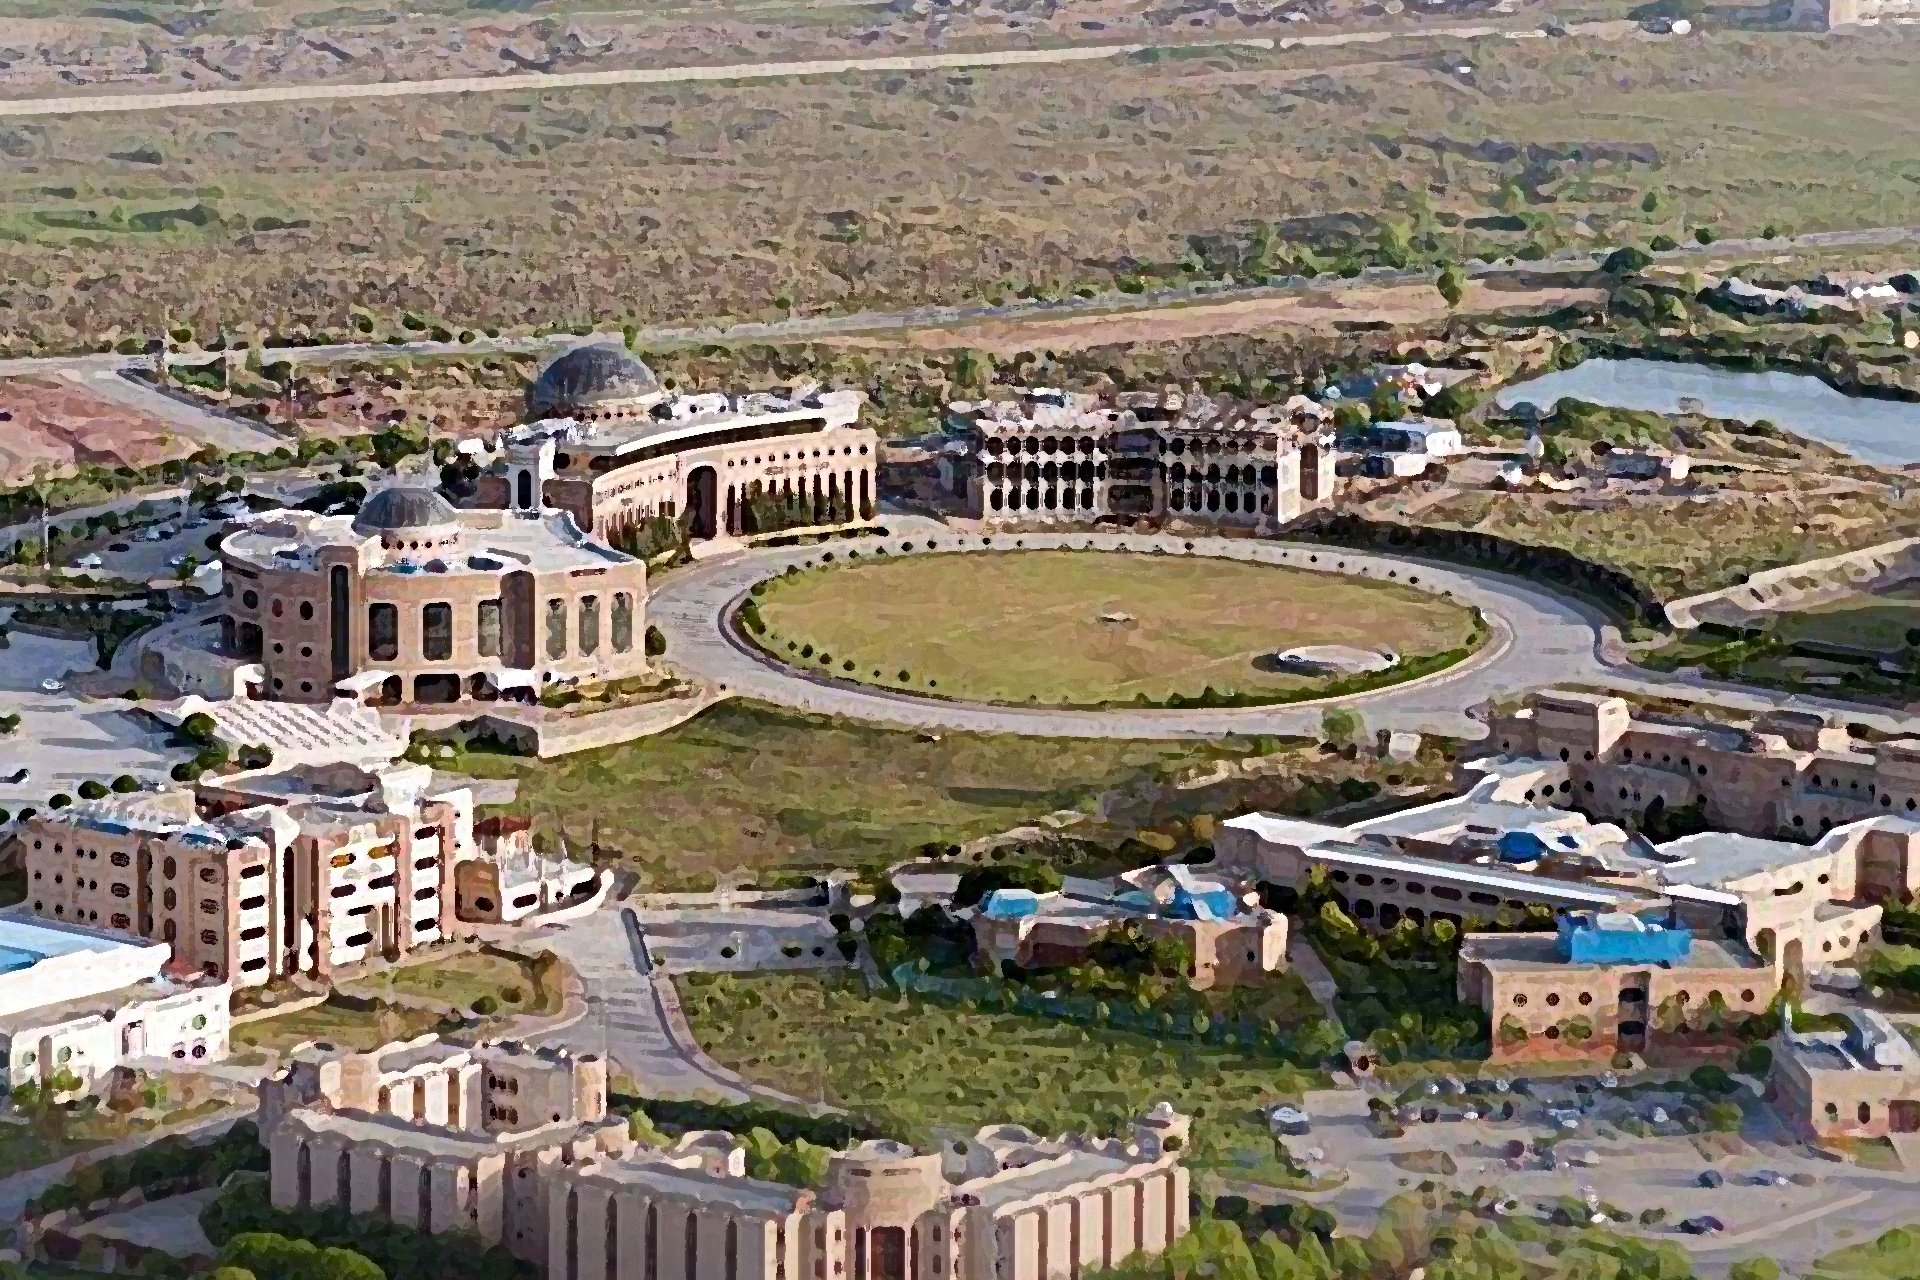 NUST main campus from above